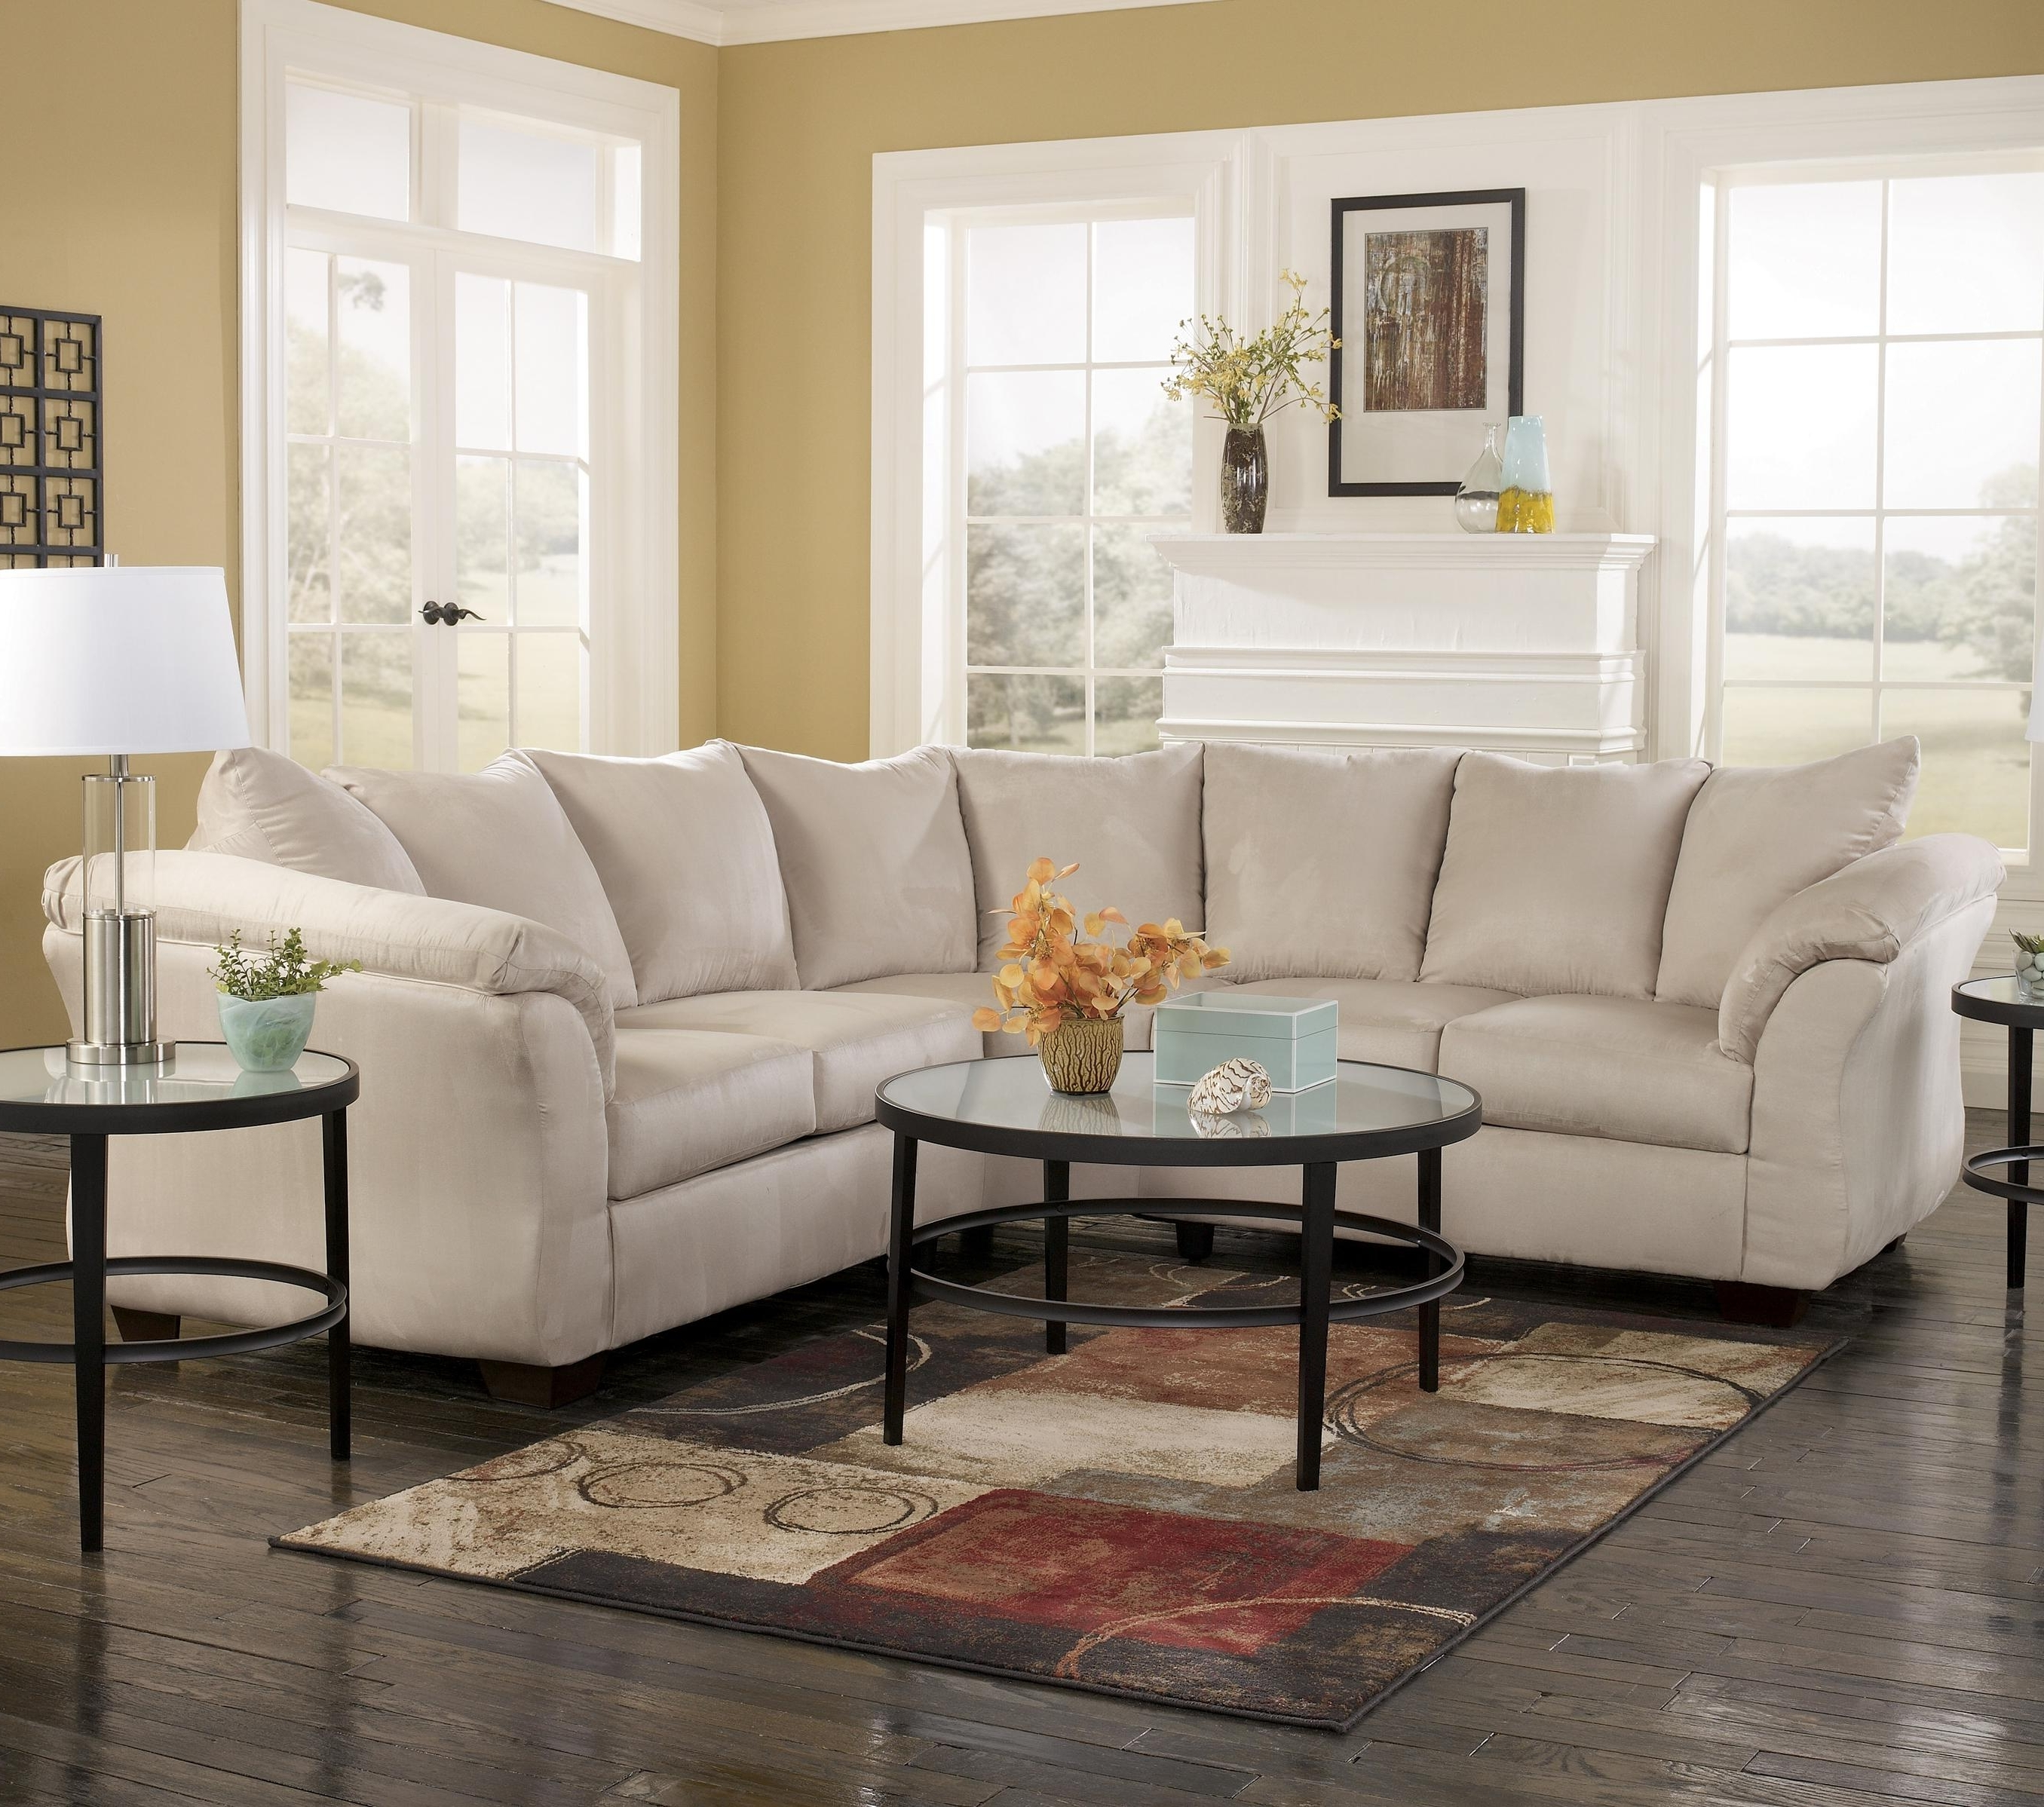 Most Recent Janesville Wi Sectional Sofas In Signature Designashley Darcy – Stone Contemporary Sectional (View 9 of 15)